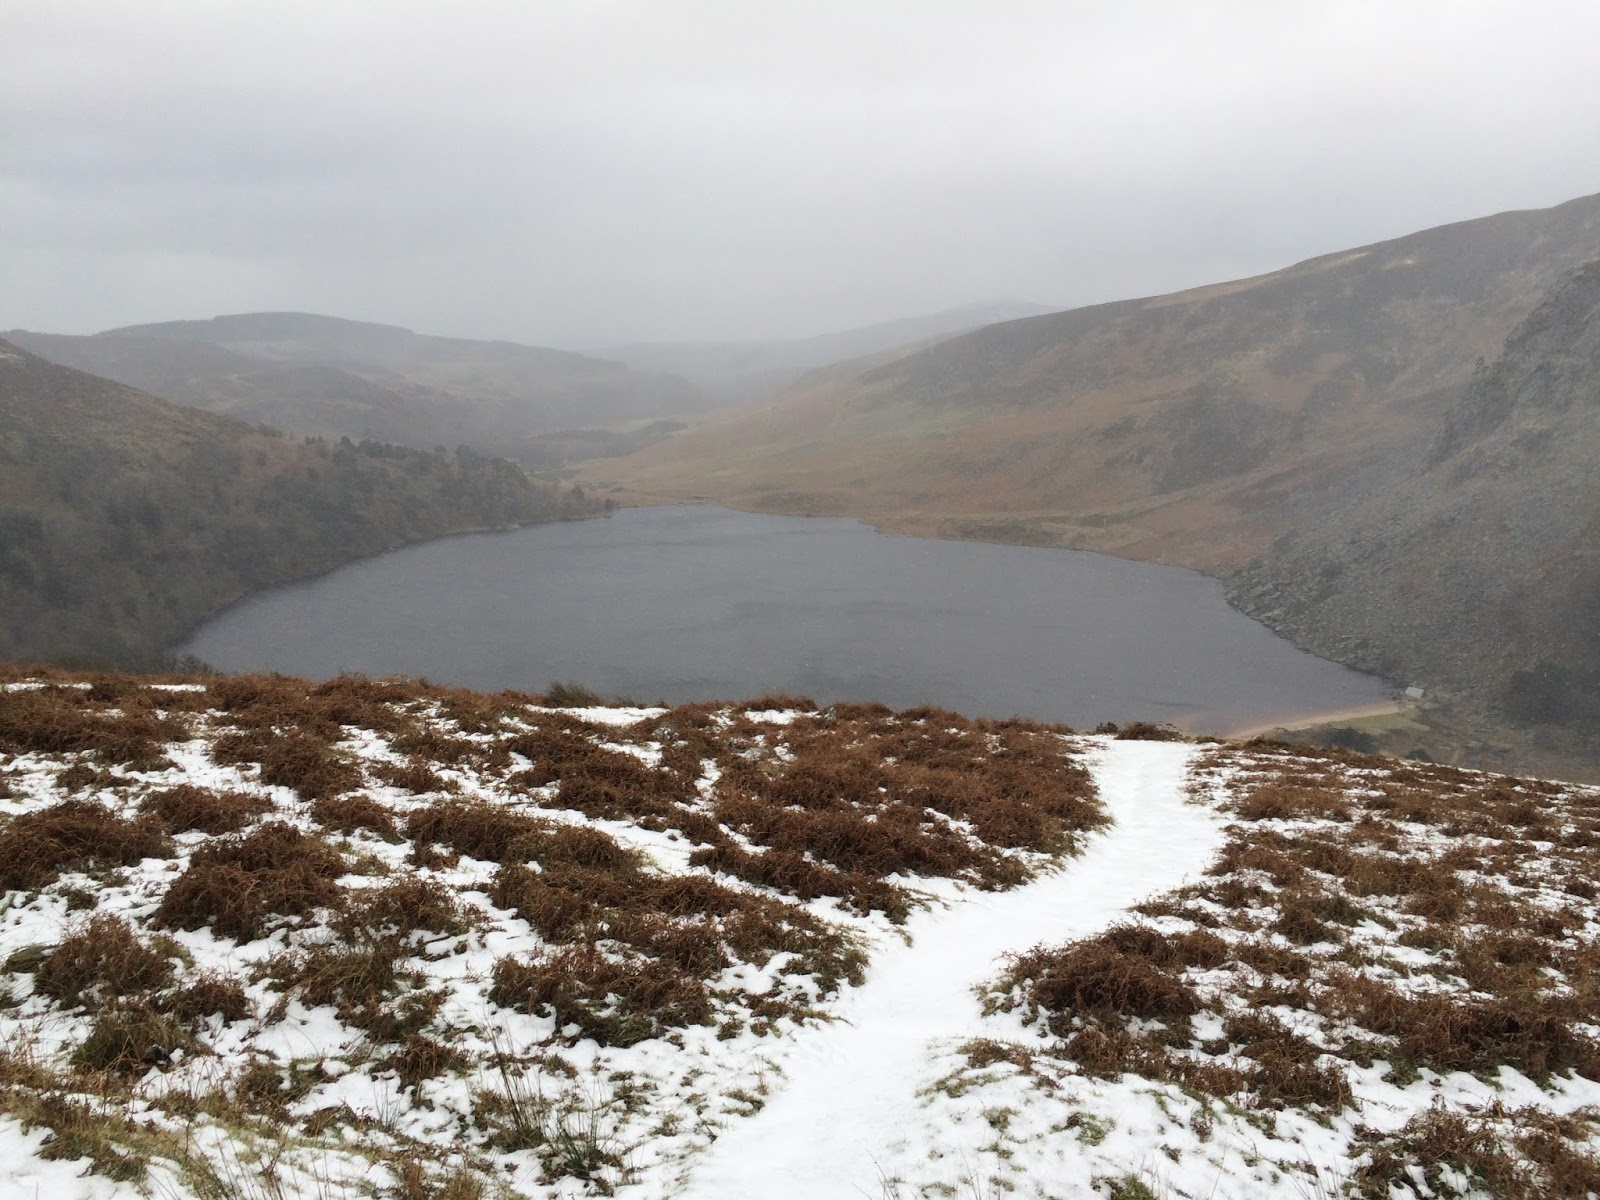 View on Lough Tay, Ireland from the old military road